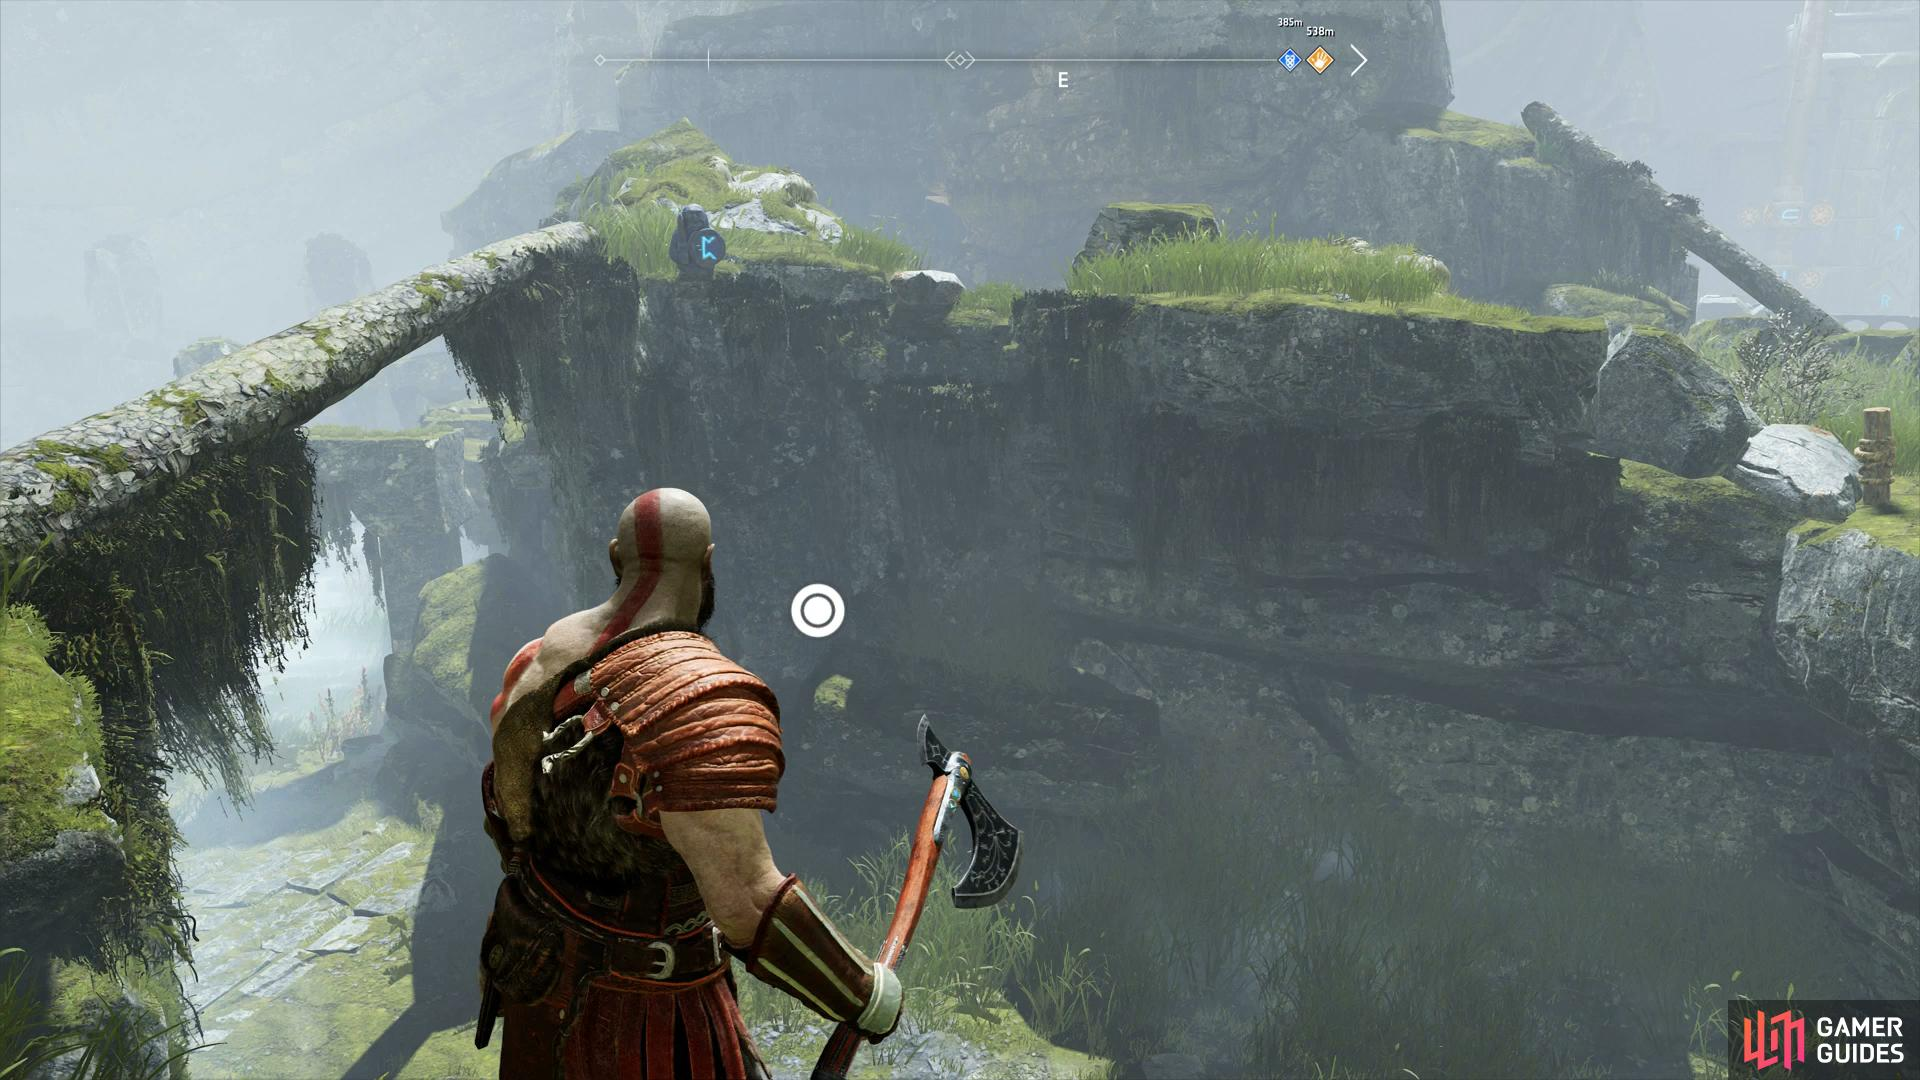 The first Rune is found to the right of the second Dragon statue, overlooking the area below